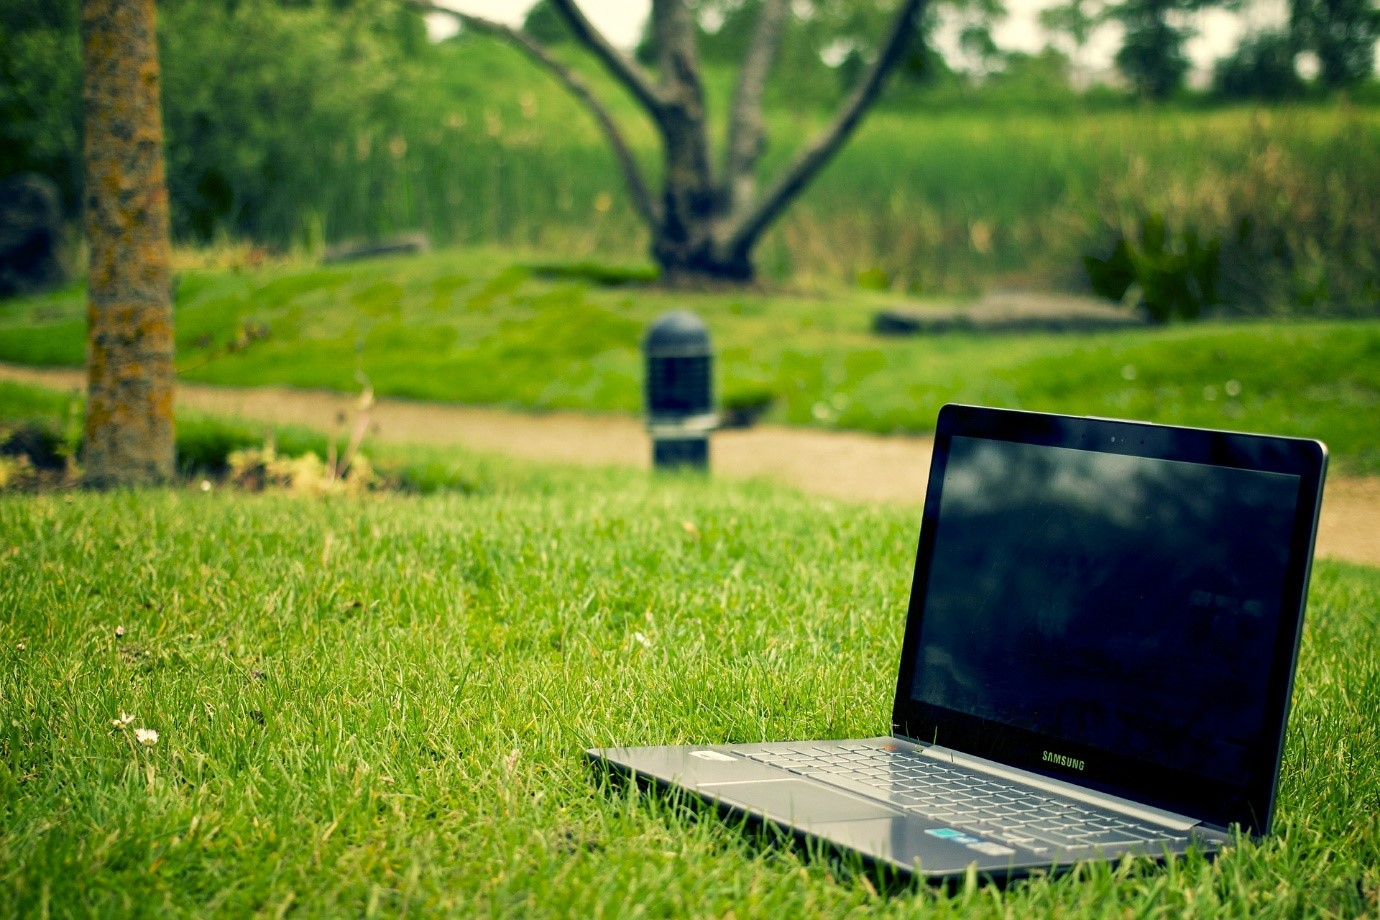 Laptop in a grassy field